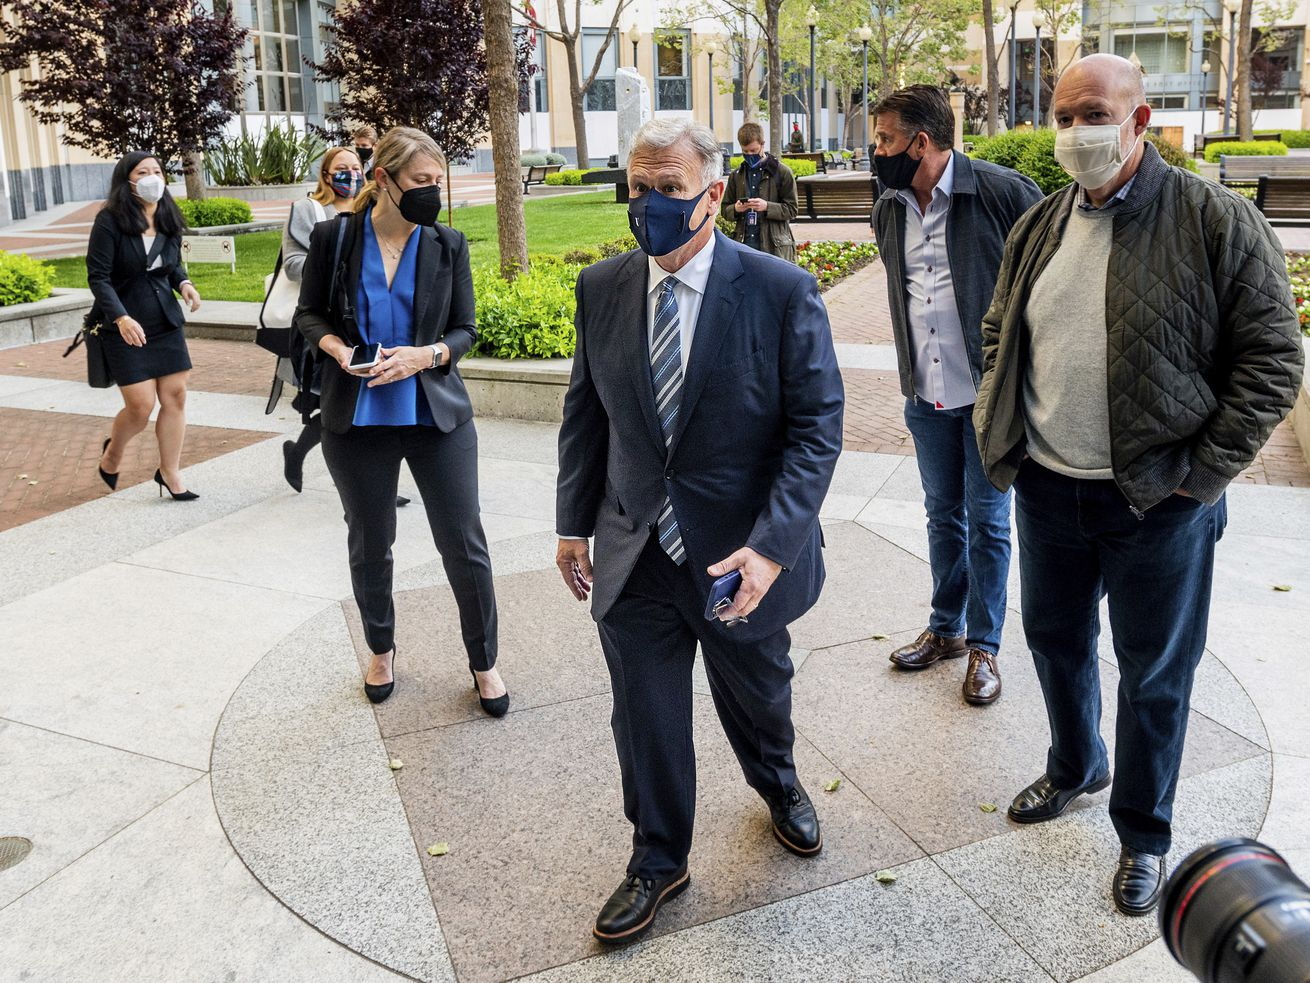 Phil Schiller, an Apple executive, enters the Ronald V. Dellums building in Oakland, Calif., on Monday, May 3, 2021, to attend a federal court case brought by Epic Games